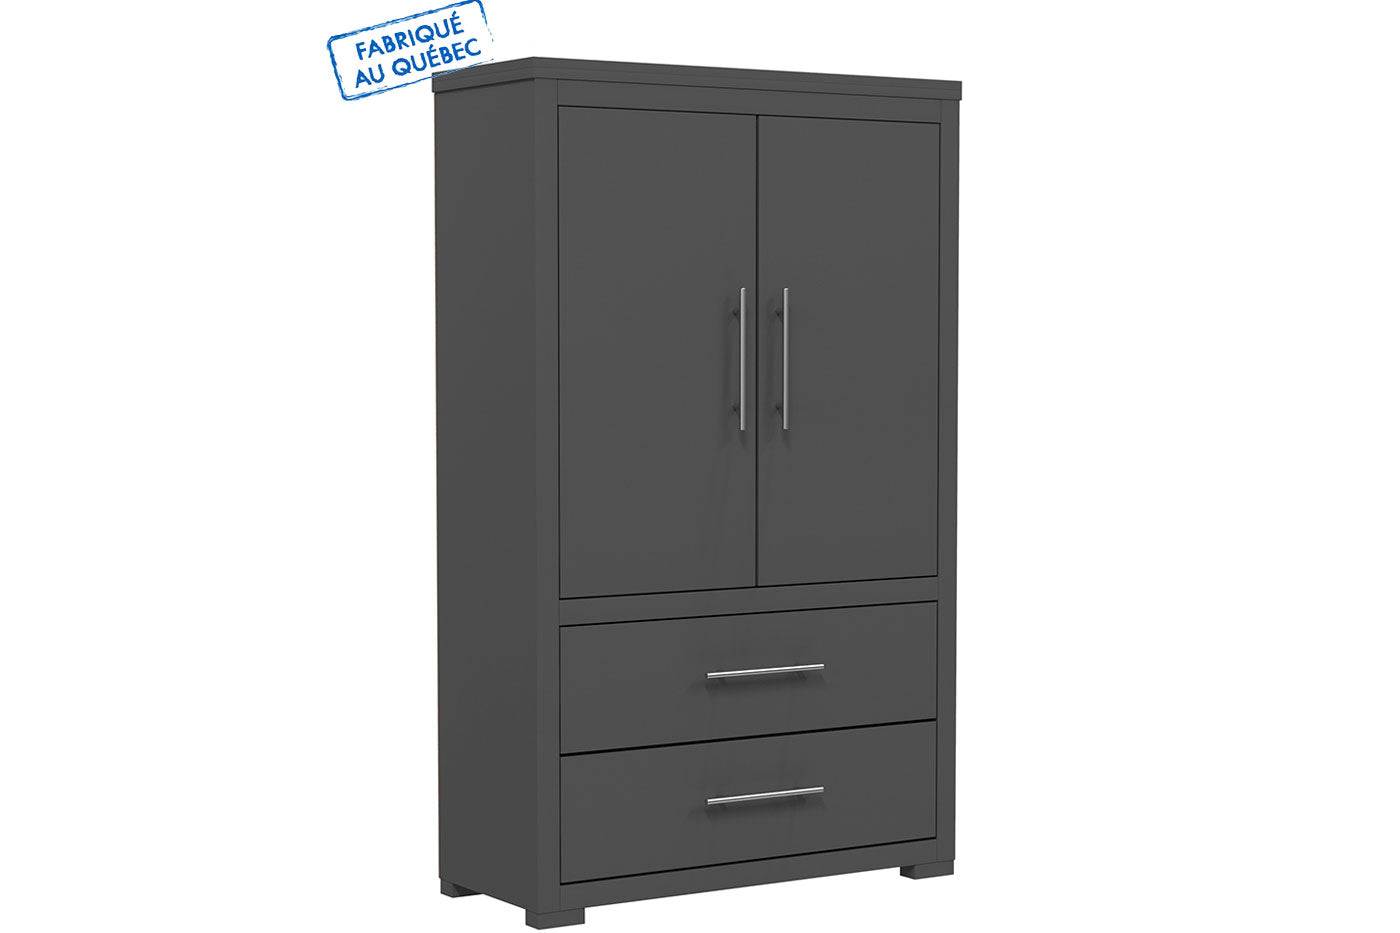 Barton wardrobe in wooden finish - Dark gray